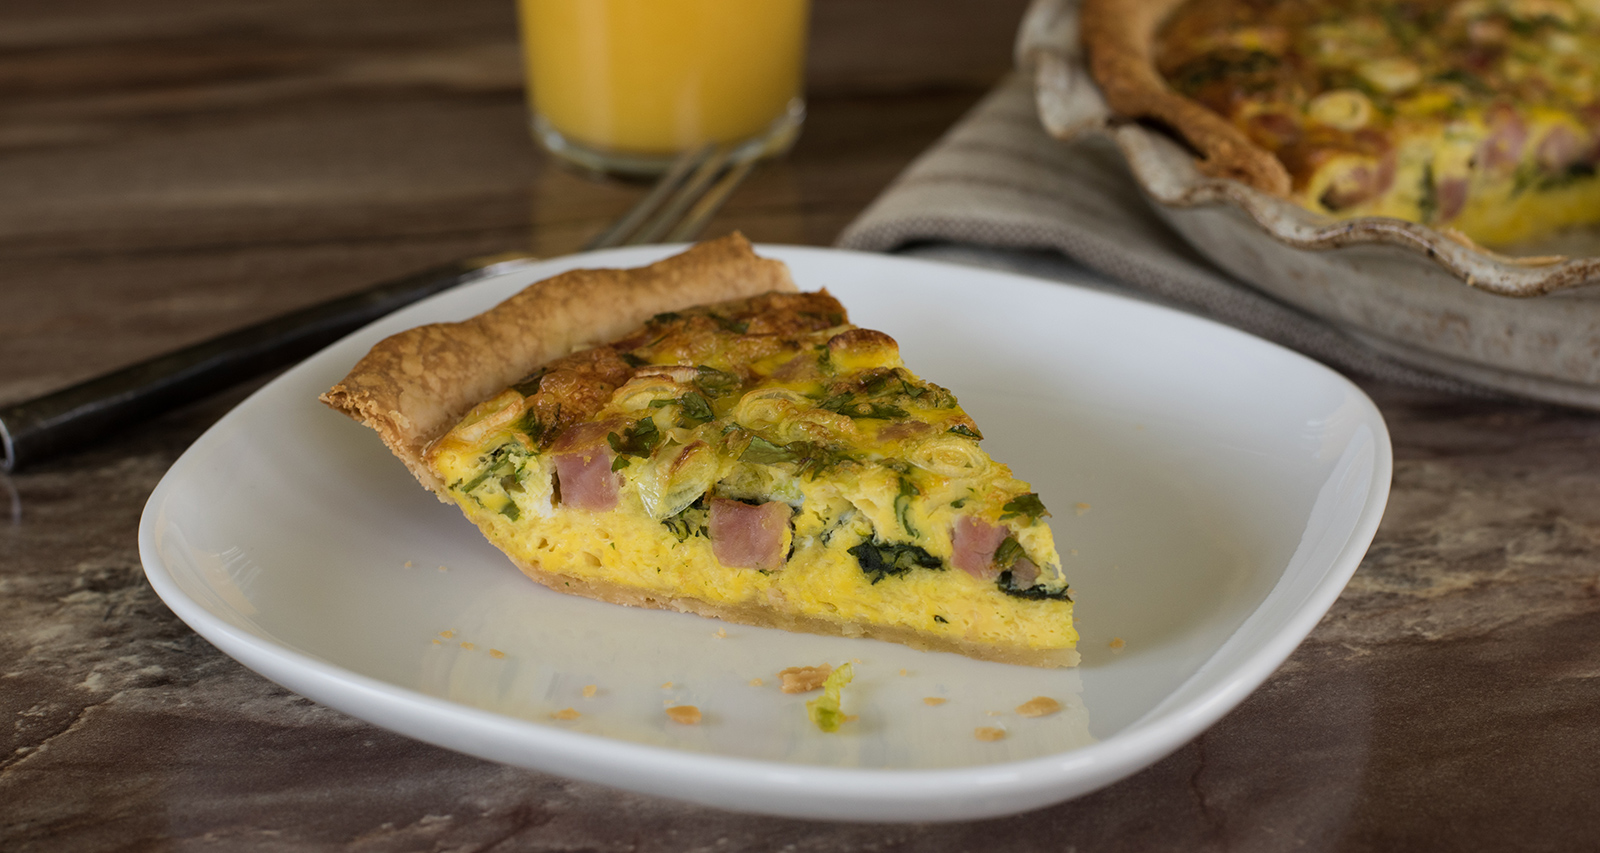 This Breakfast Delight Quiche combines classic flavors in an easy pie crust.